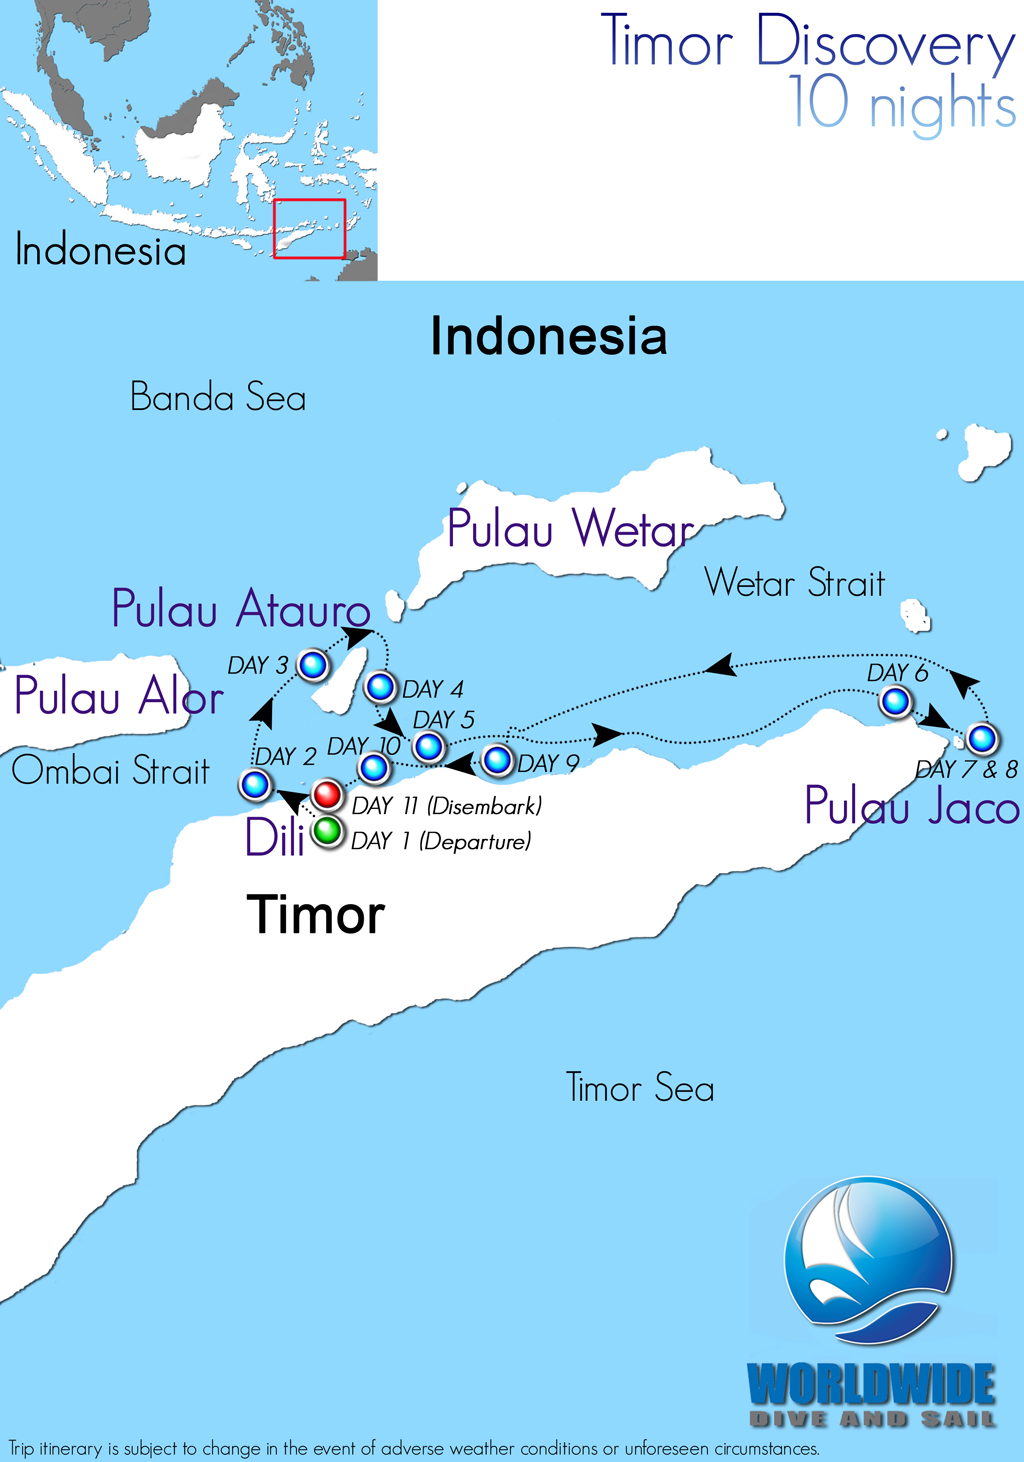 timor_discovery_10_nights.jpg